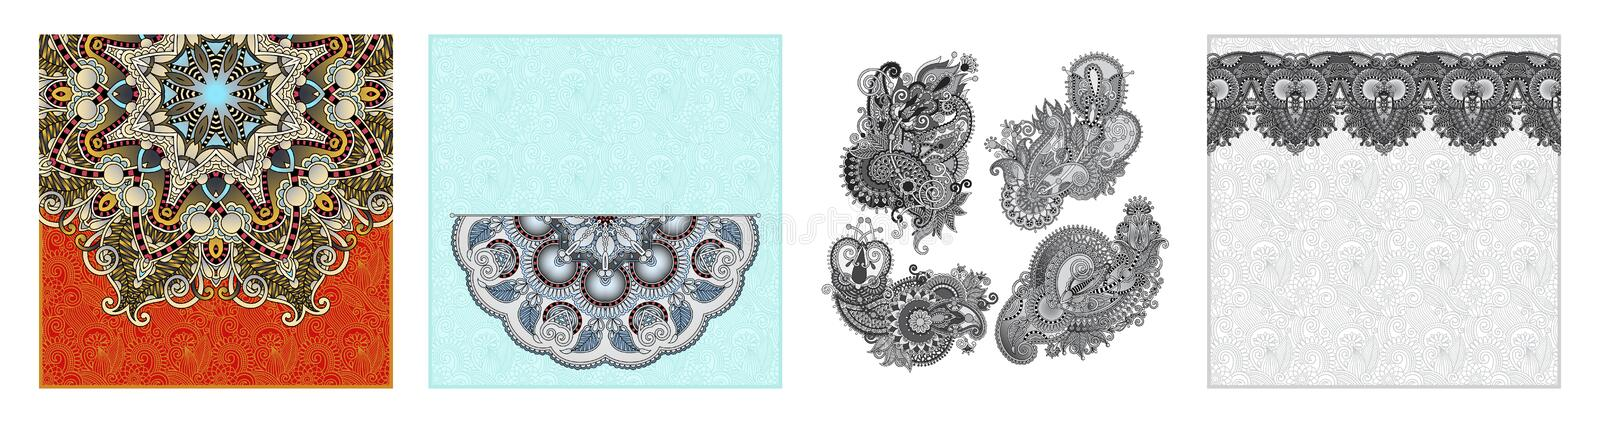 Floral round pattern in ukrainian oriental ethnic style for your greeting card. Or invitation, template frame design for card, vintage lace doily, vector vector illustration